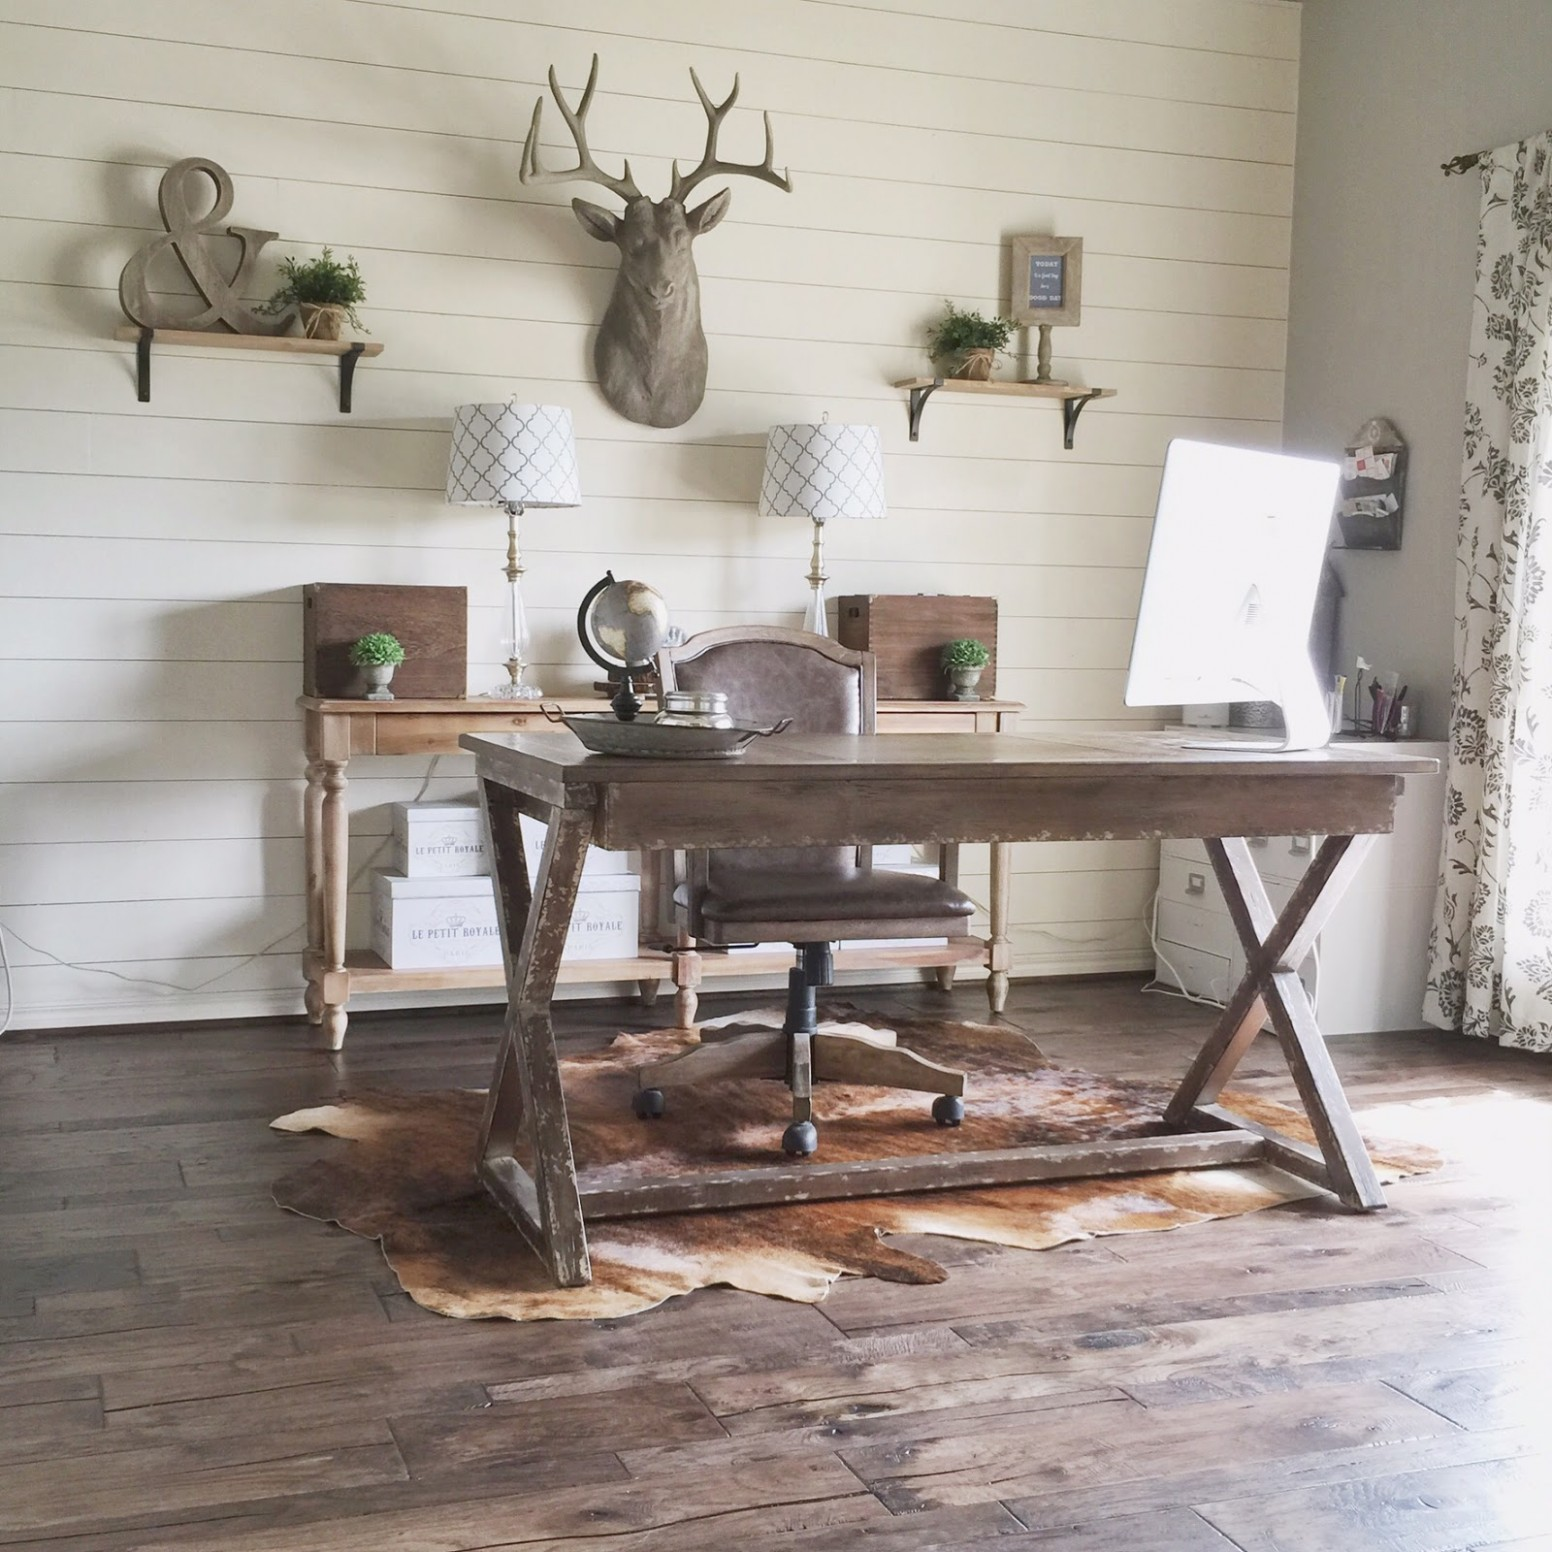 Remodelaholic  Rustic Modern Home Office Design Inspiration & Tips - Home Office Ideas Rustic